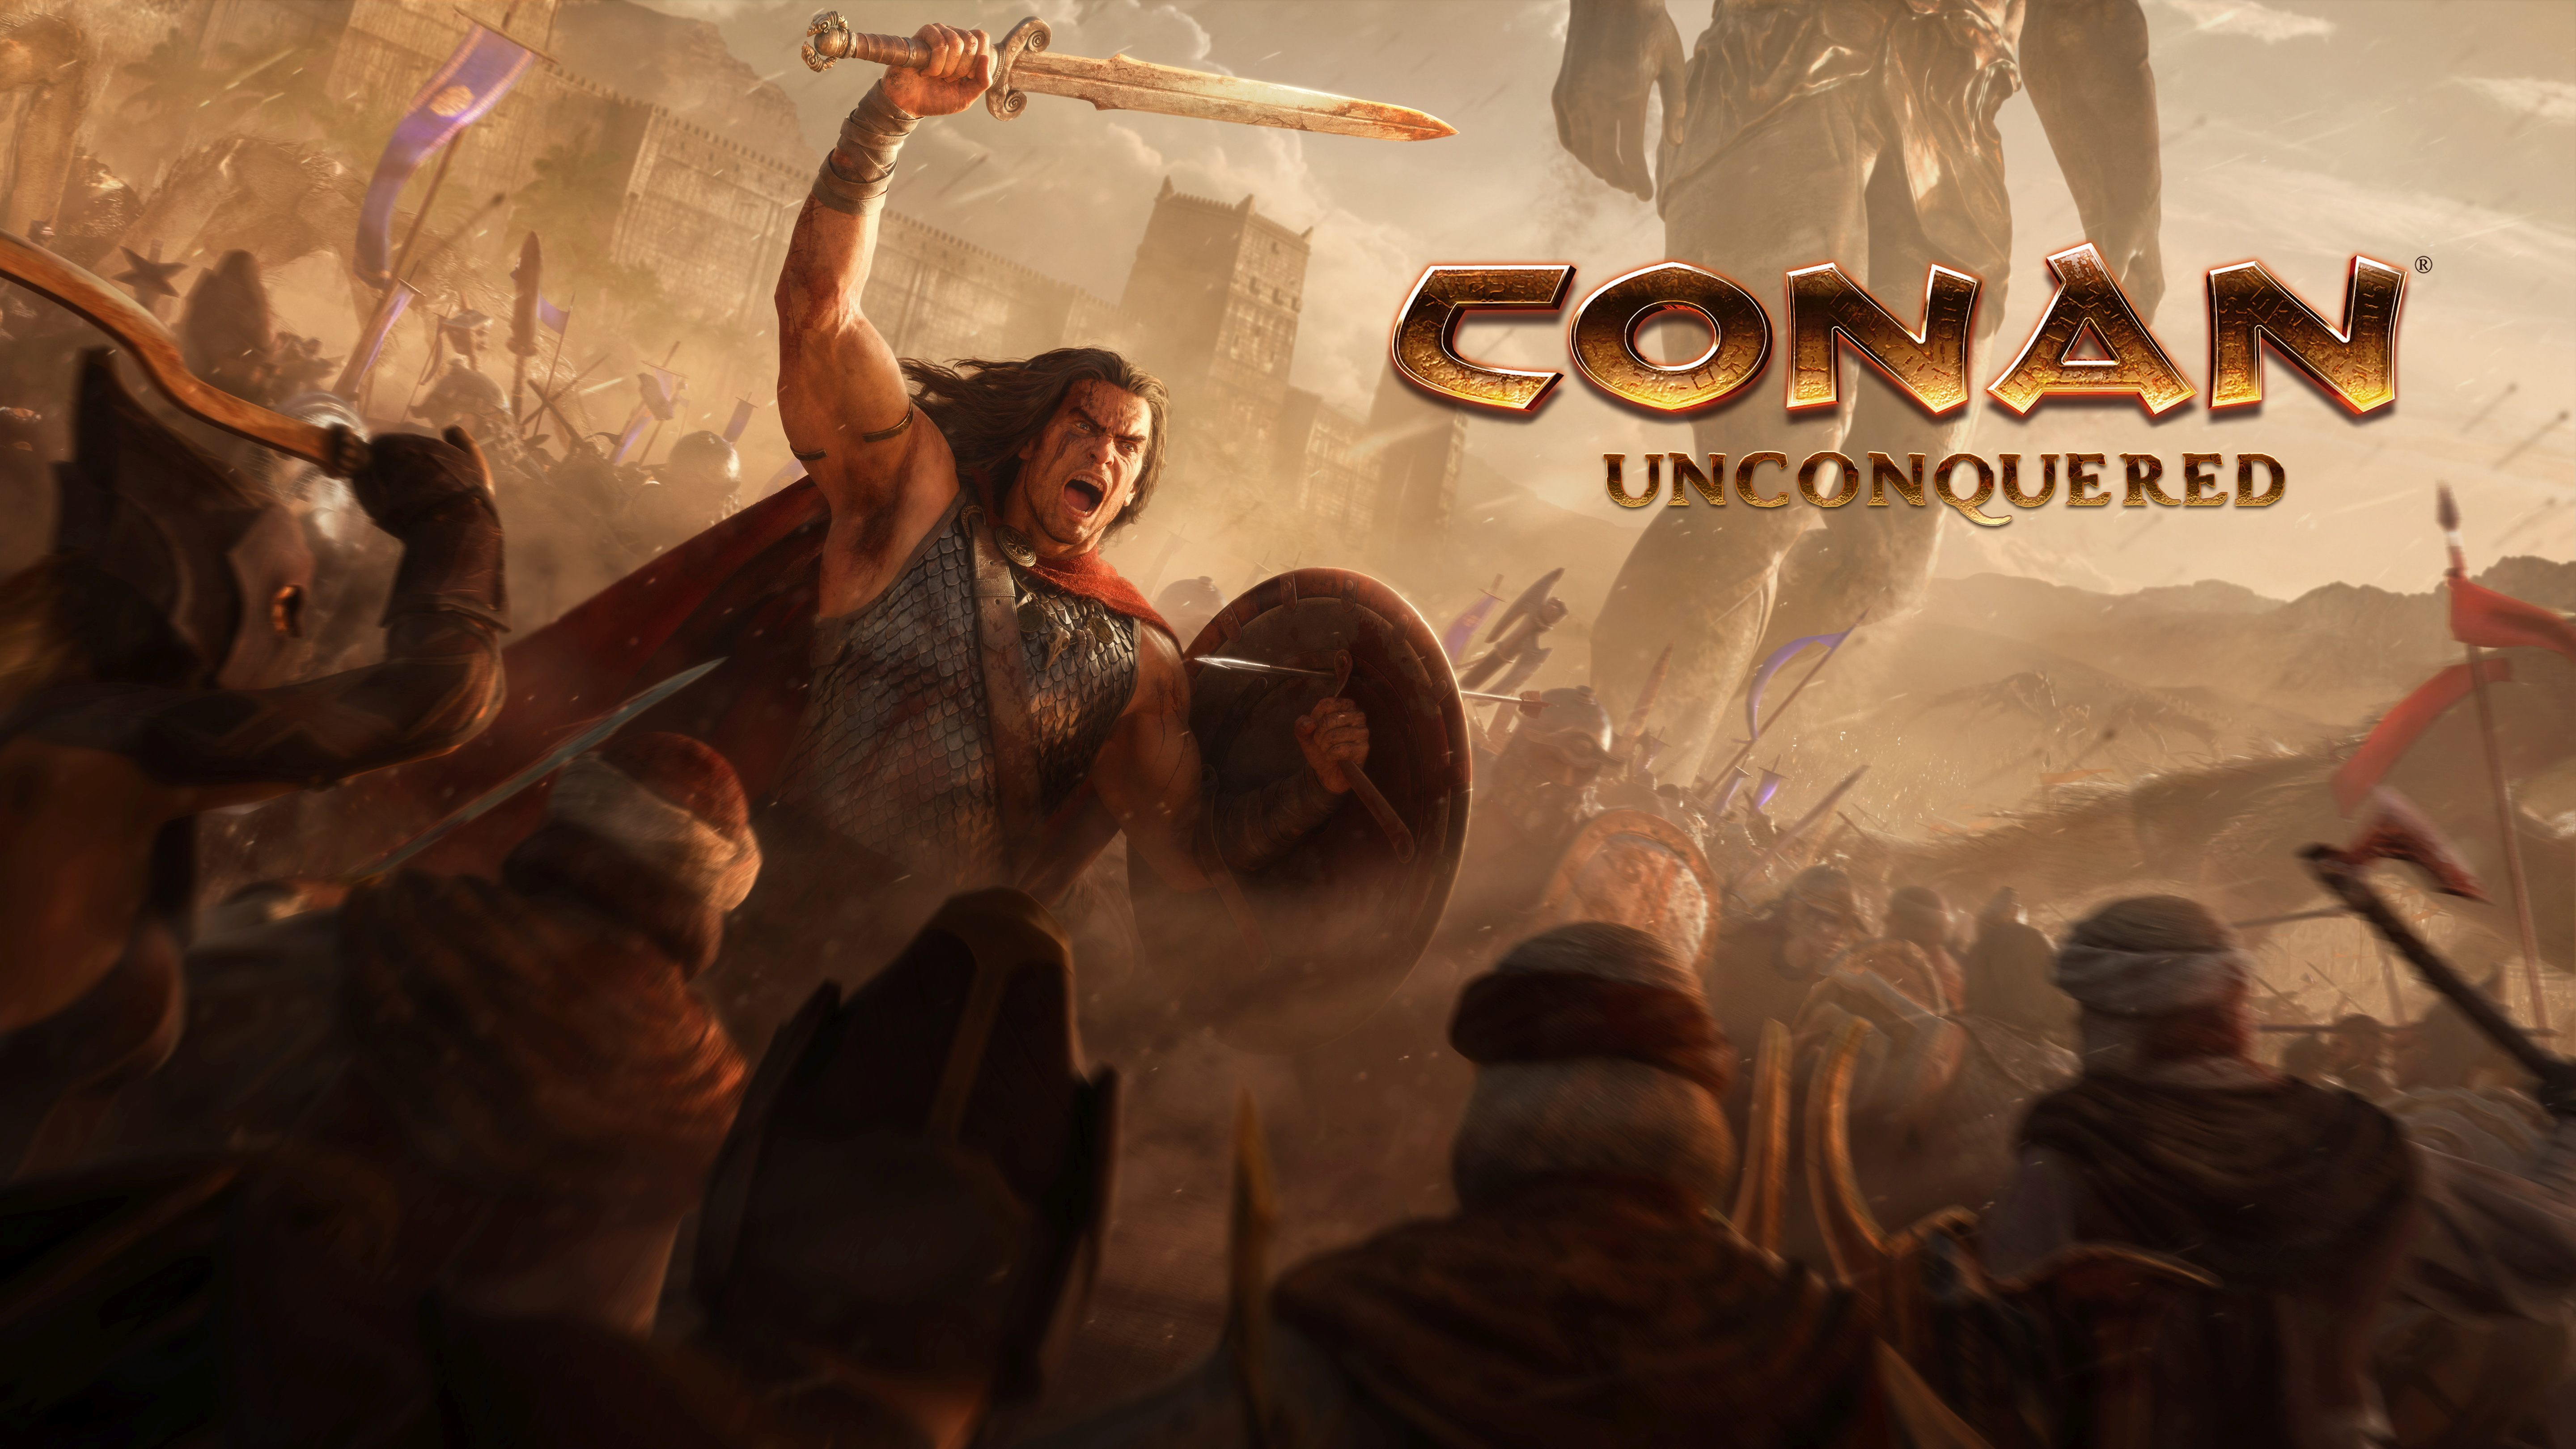 Conan Unconquered gameplay reveal real time strategy survival